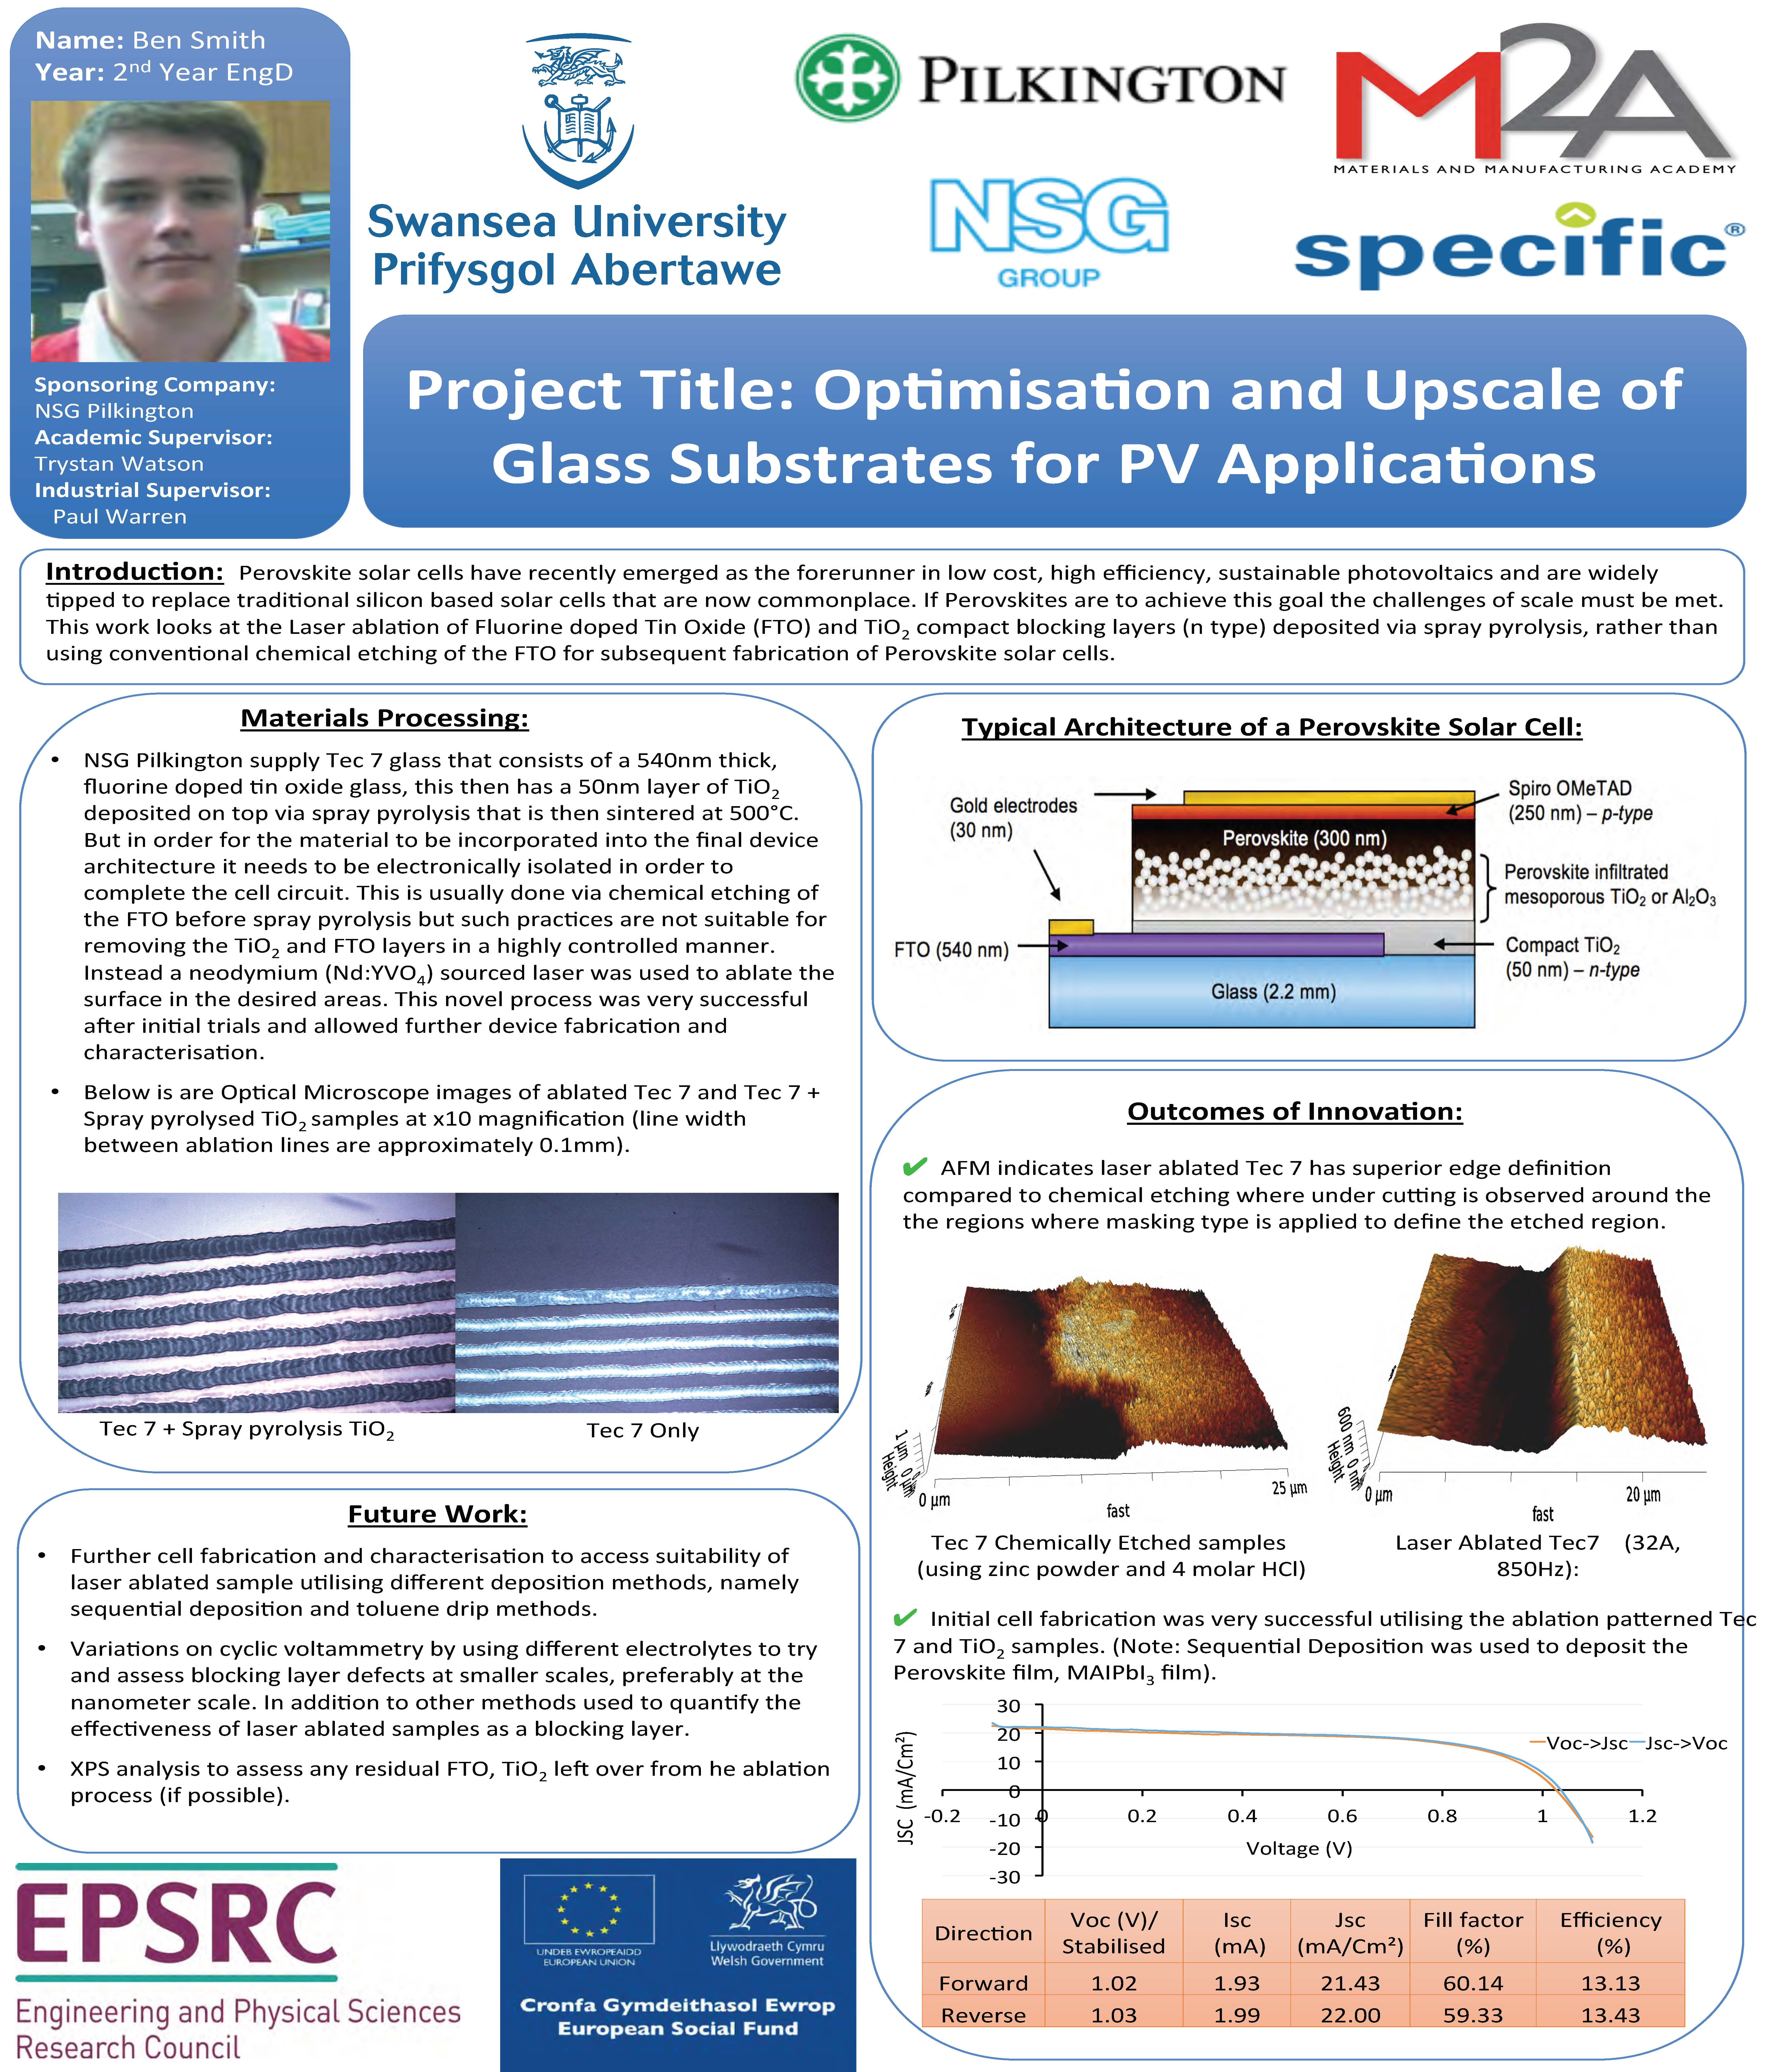 Optimisation and Upscale of Glass Substrates for PV Applications